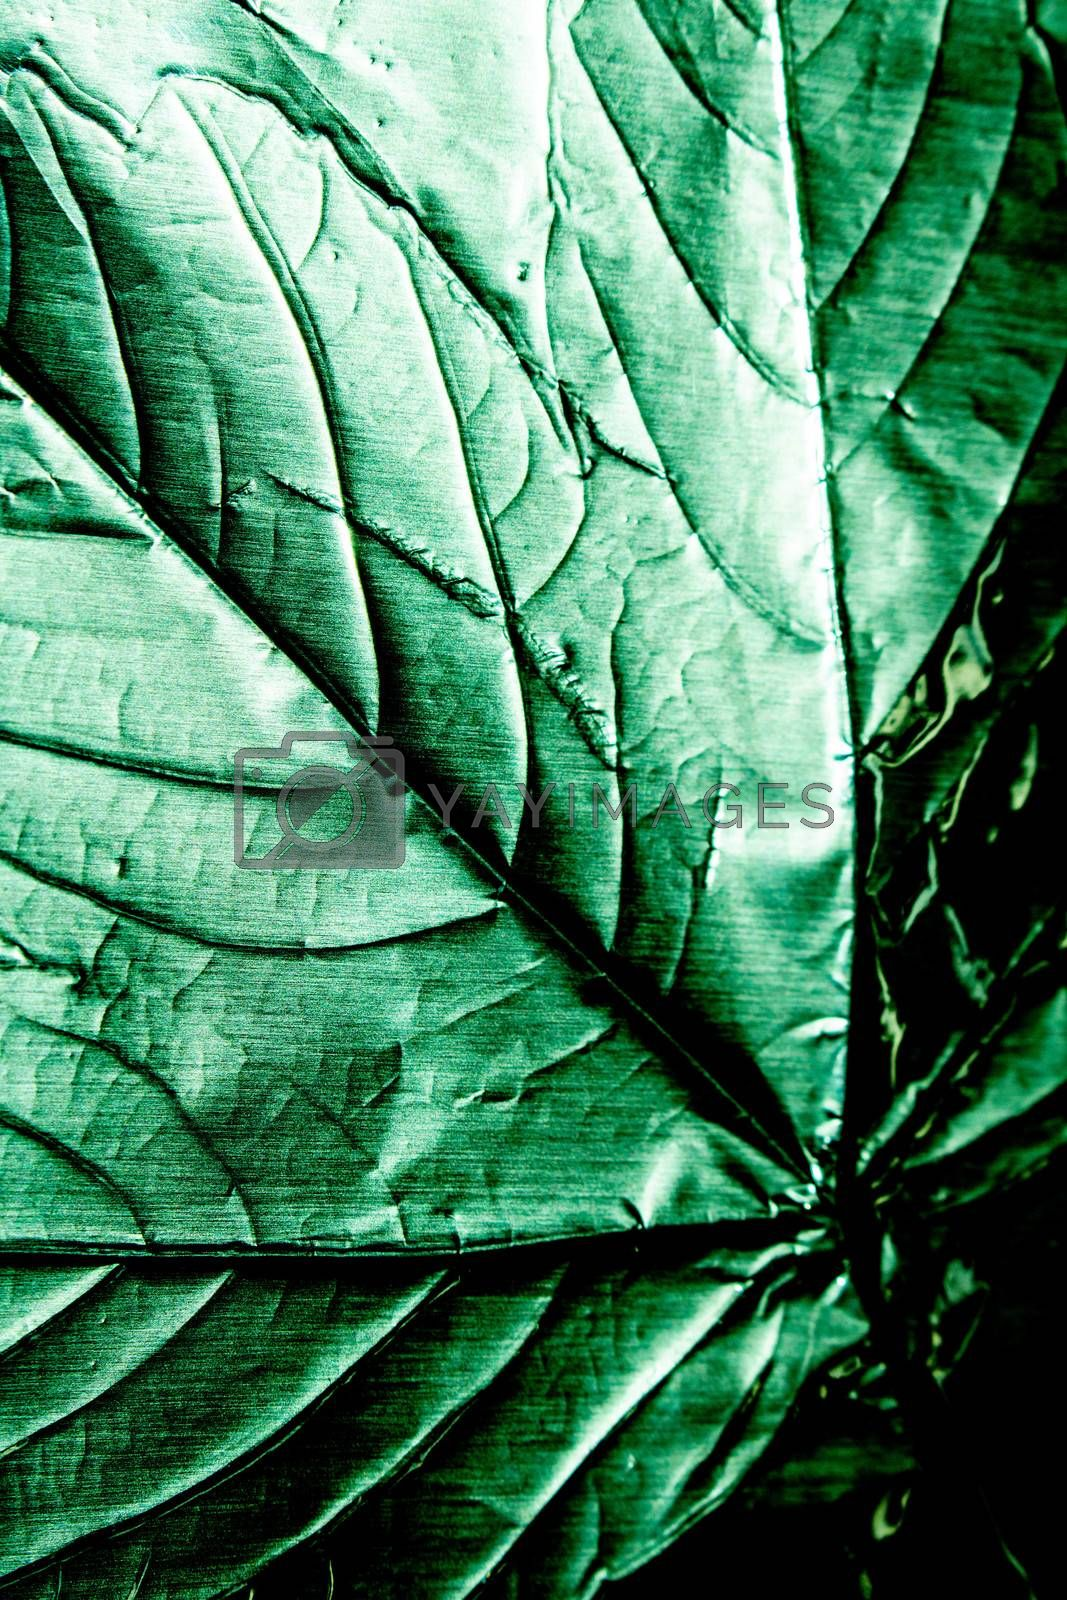 Holographic Foil Leaf and Leaves with Veins Texture Shiny Pattern